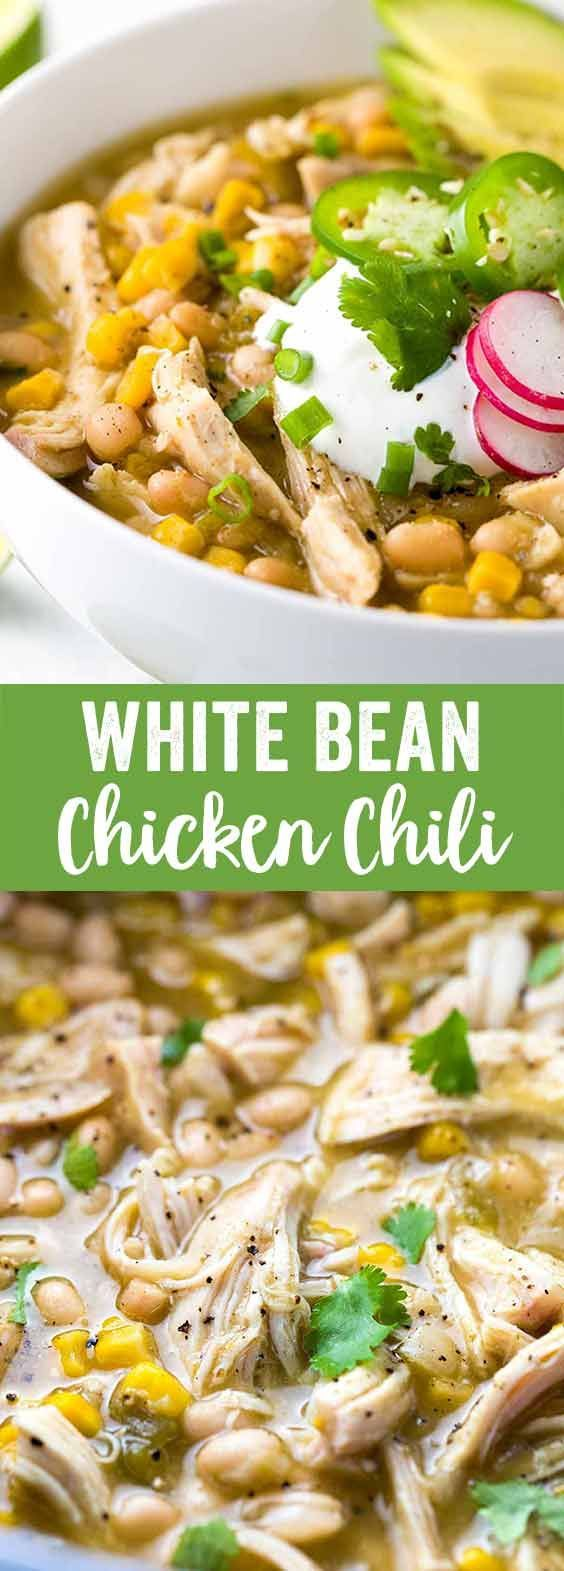 White Bean Chicken Chili Recipe | white chicken chili slow cooker | crockpot chicken chili | chicken chili crockpot | crockpot chili chicken | chicken chili easy | crockpot chicken easy #crockpotchicken #chickenrecipe #crockpot #chickenchili #slowcooker #dinner #chickendinner